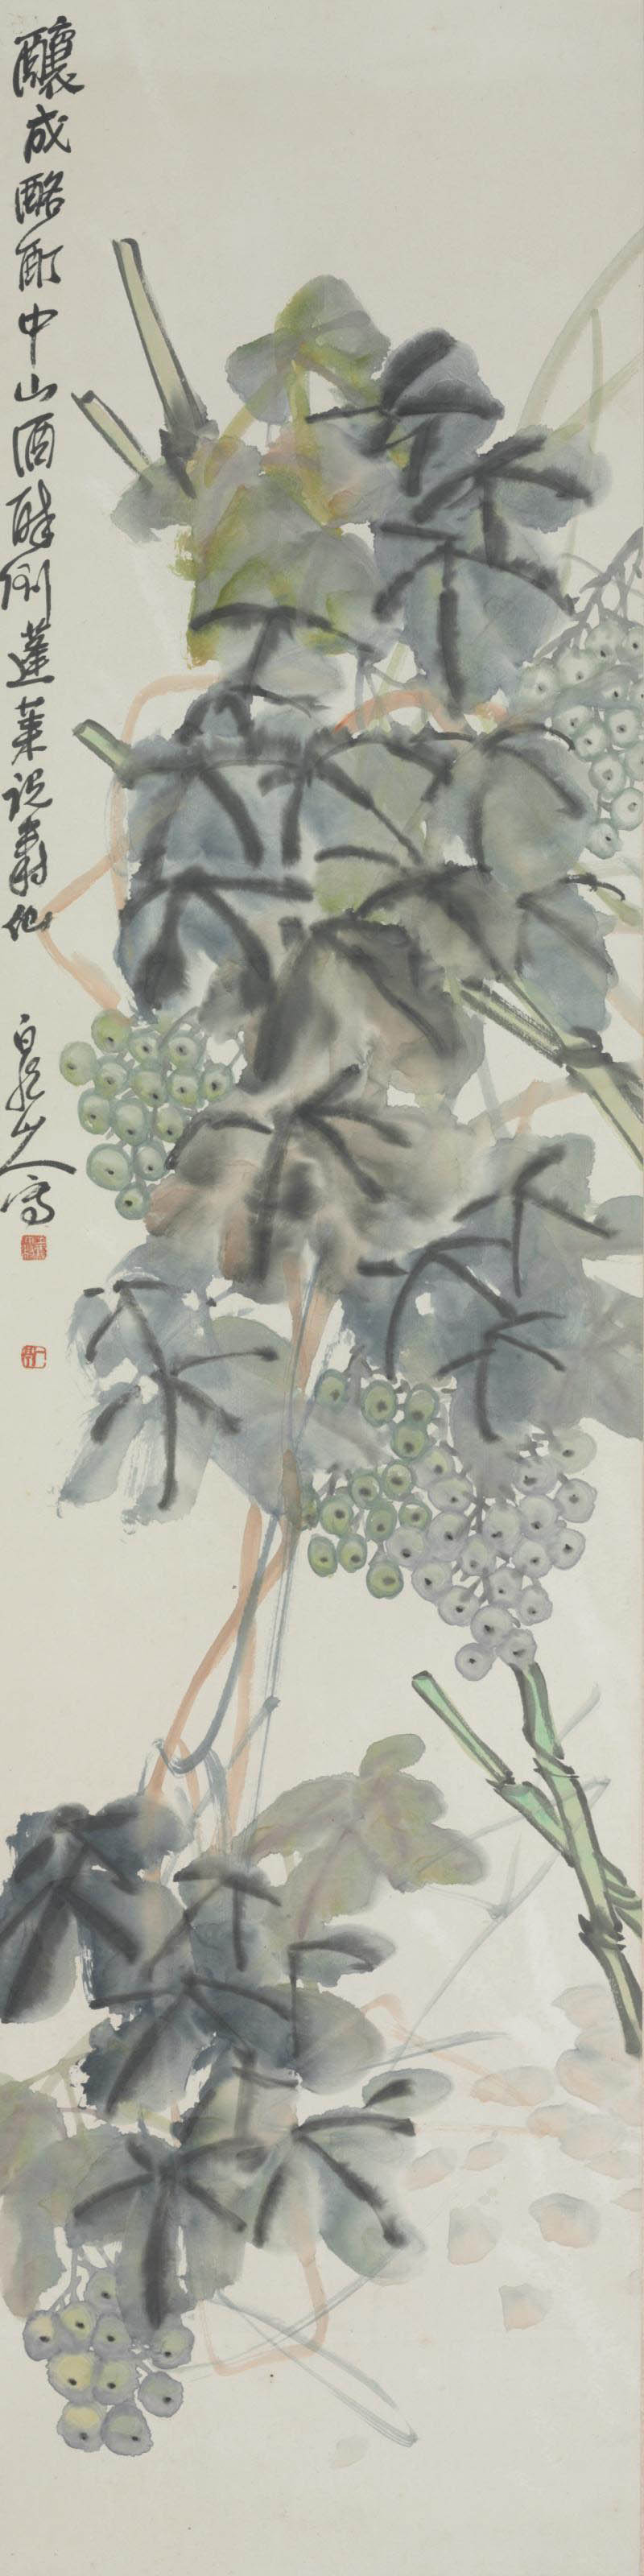 A CHINESE HANGING SCROLL OF GRAPES,